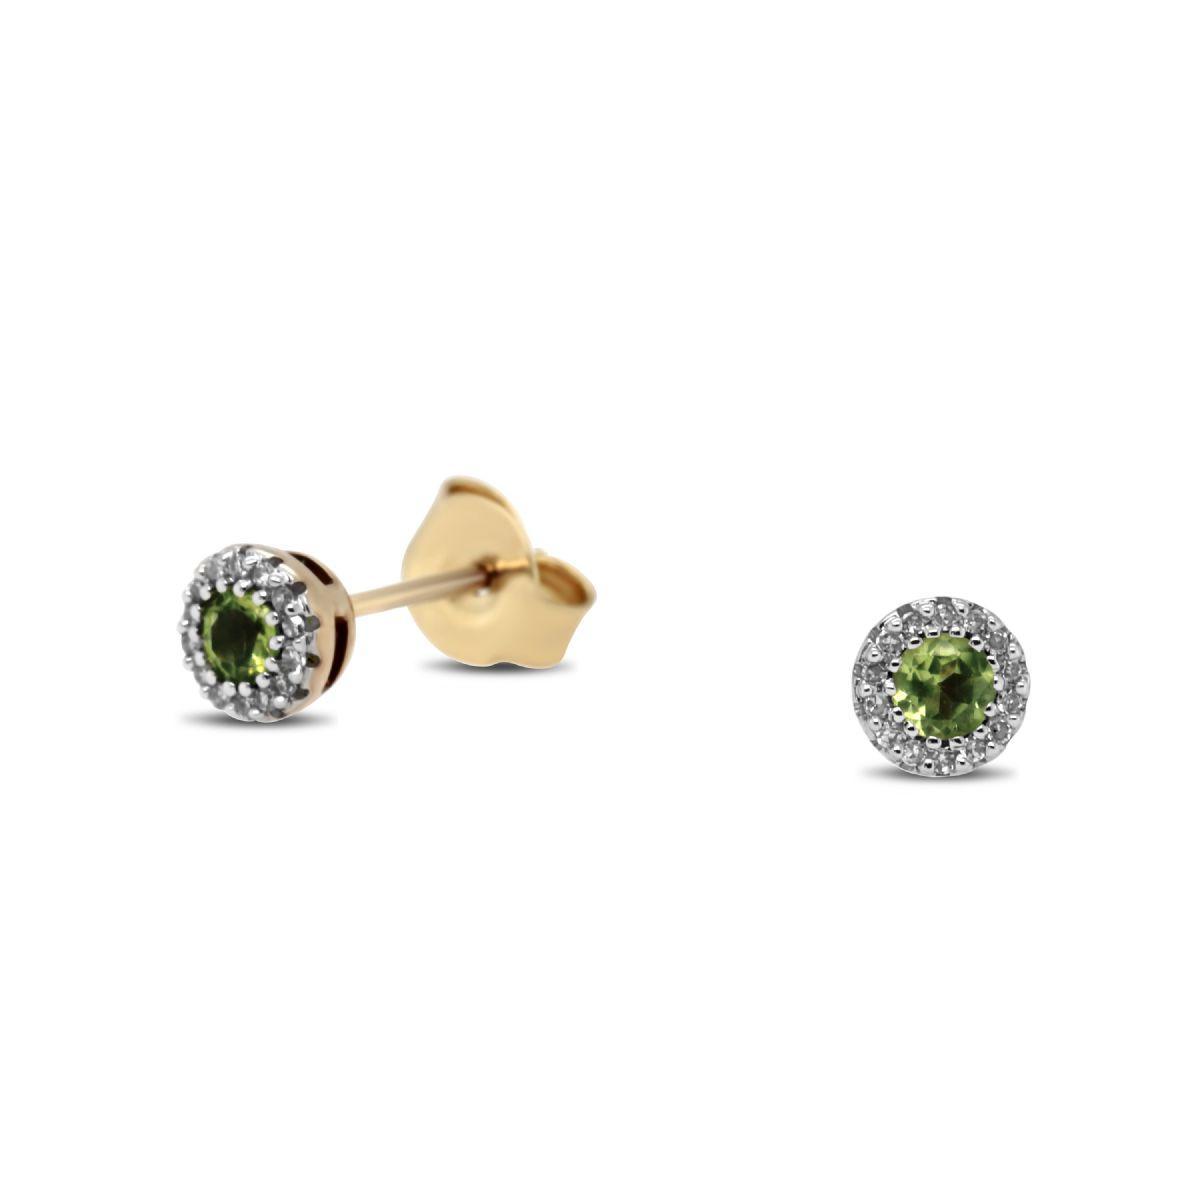 9k gold diamond and peridot stud earrings - Earrings